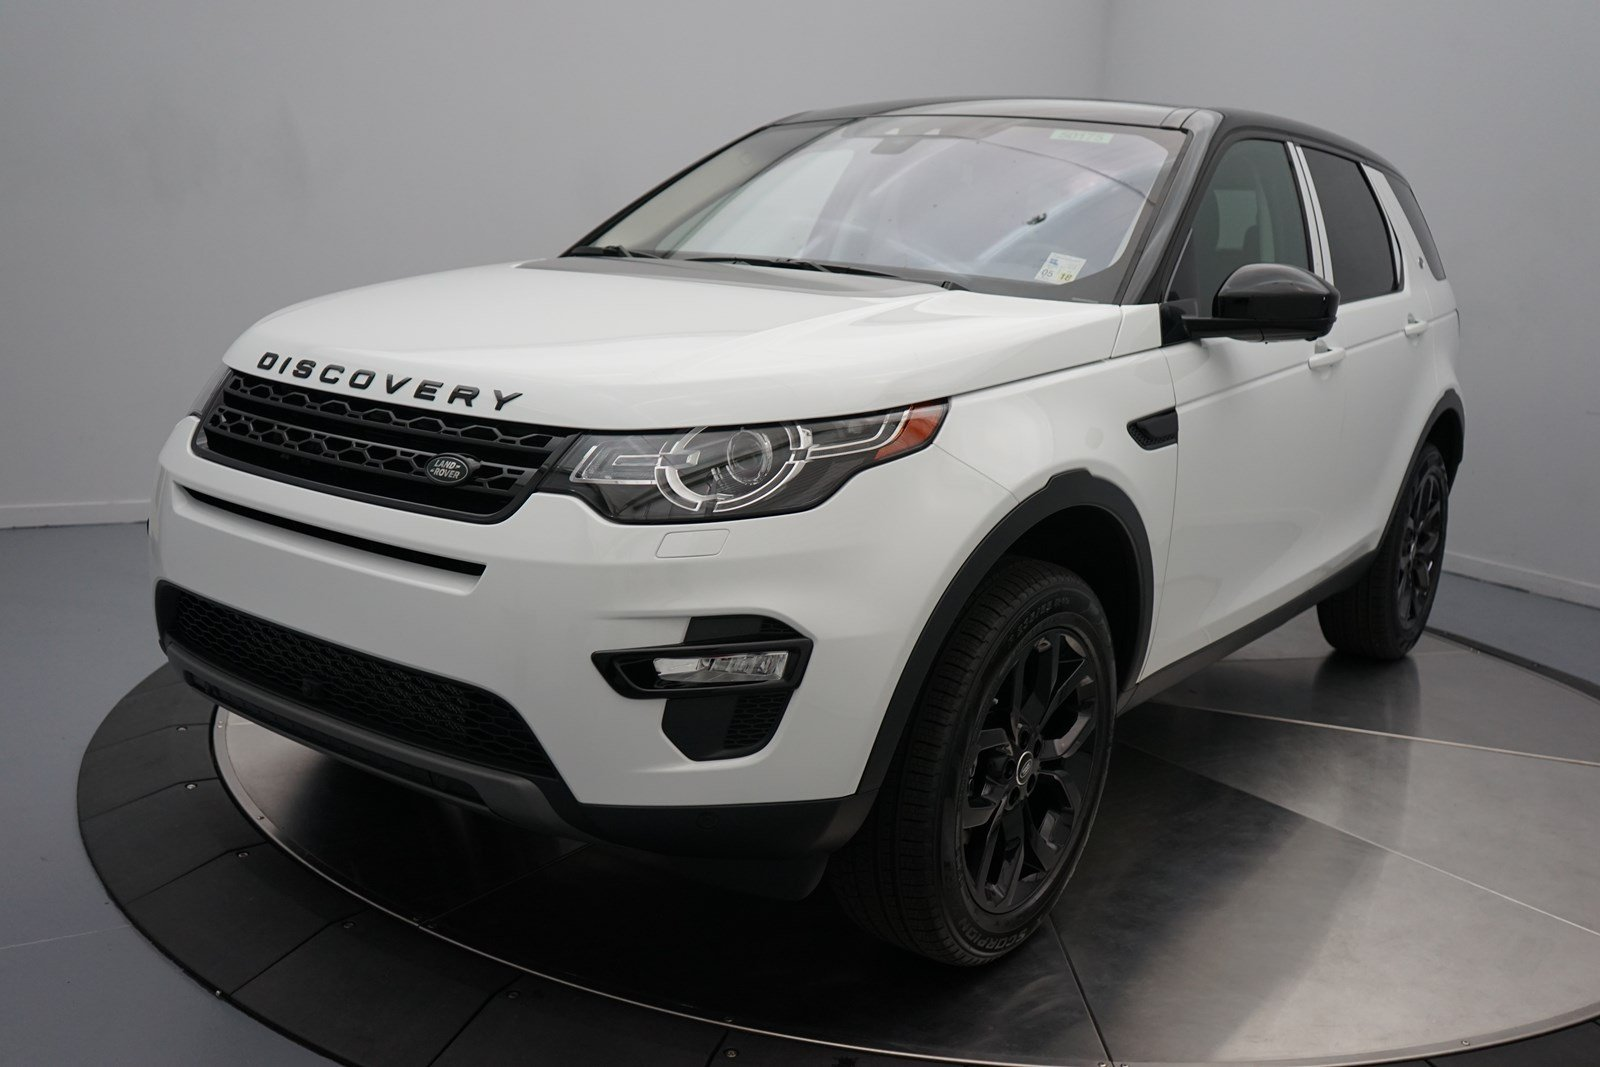 new 2017 land rover discovery sport hse 4 door suv in shreveport 50175 land rover of shreveport. Black Bedroom Furniture Sets. Home Design Ideas